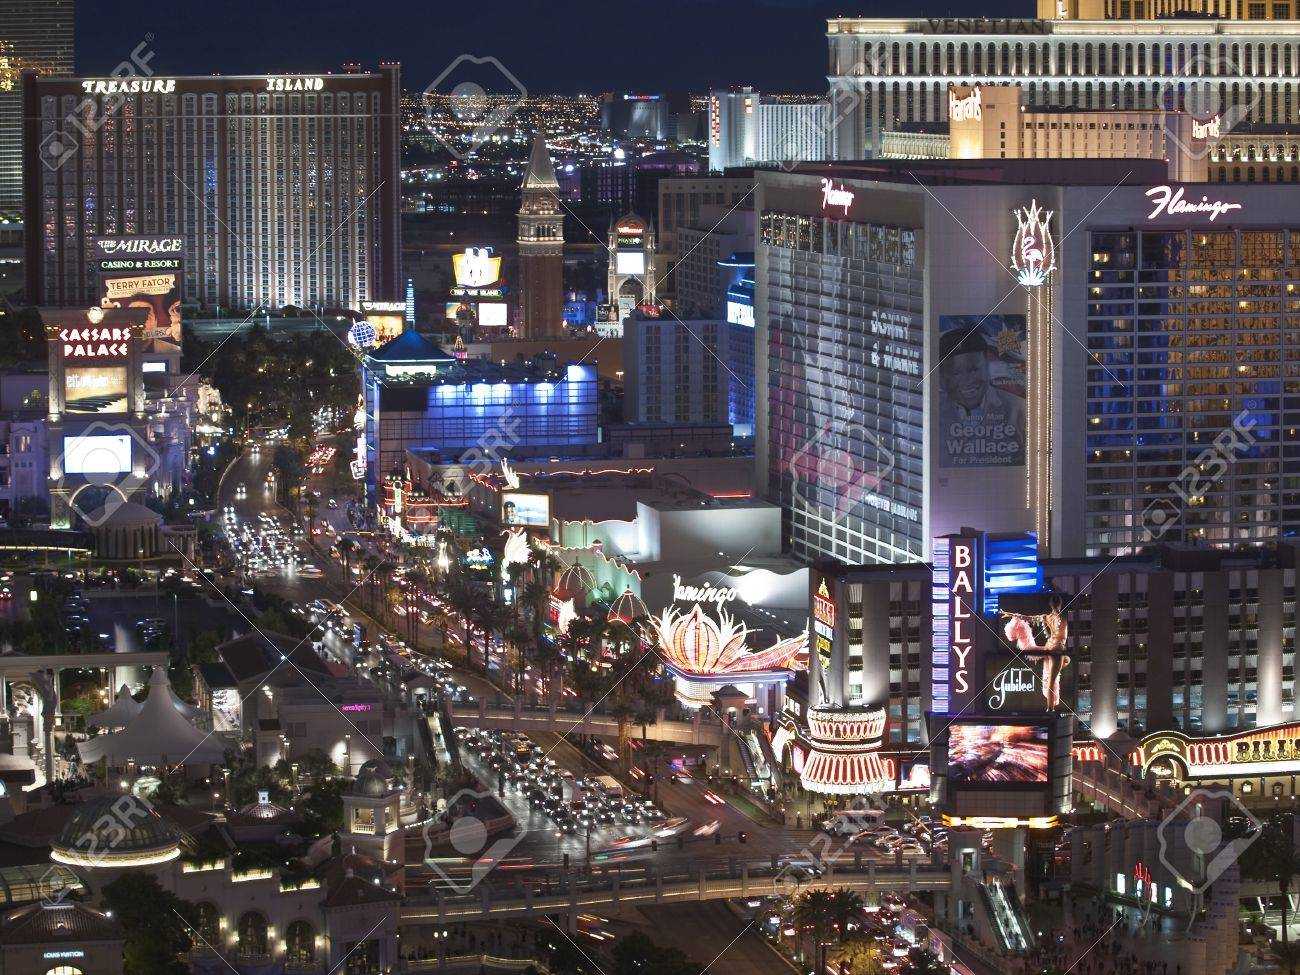 Las Vegas, Nevada, USA - October 6, 2011:  Early evening light at Treasure Island, Trump, Flamingo and other resorts on the Las Vegas strip in southern Nevada. Stock Photo - 10820694